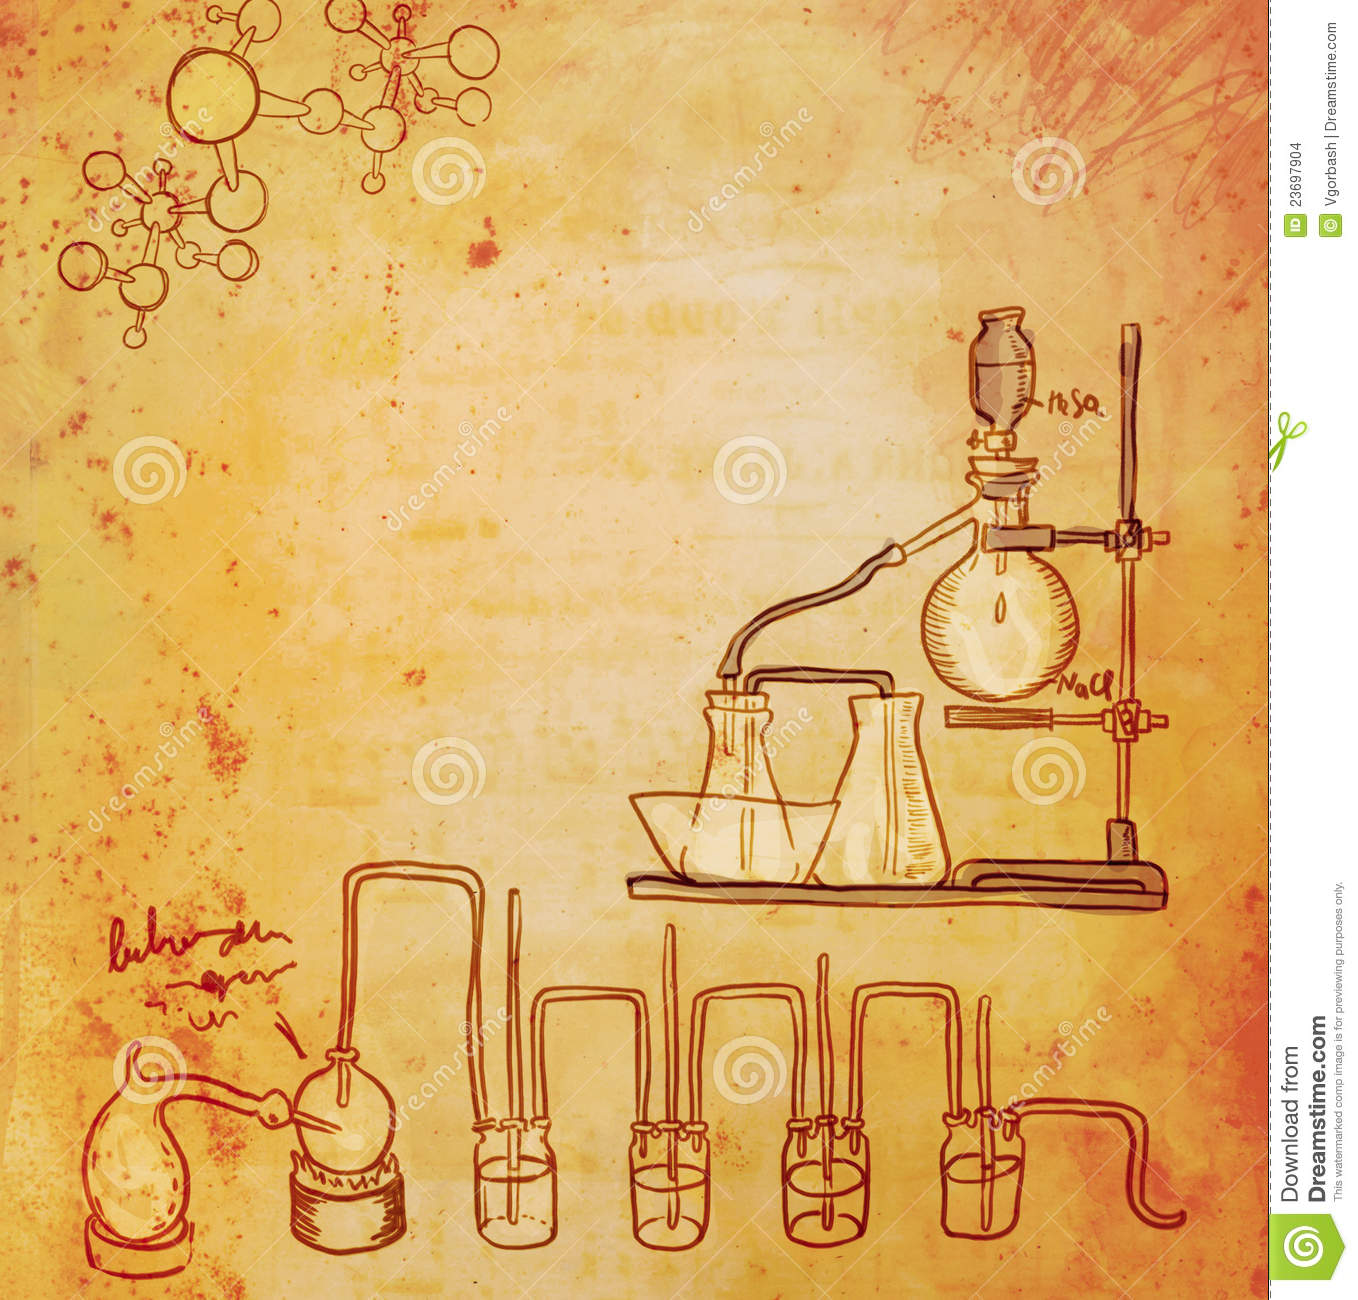 Old Chemistry Laboratory Background Stock Images - Image: 23697904